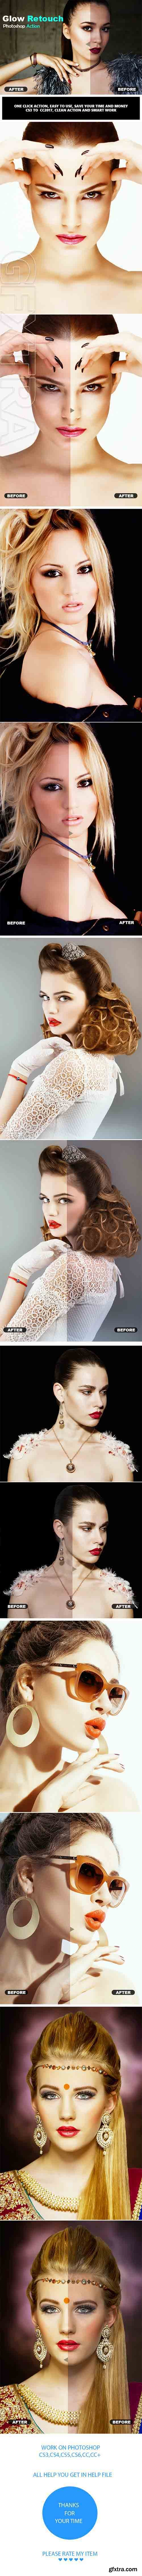 GraphicRiver - Glow Retouch Photoshop Action 20924703